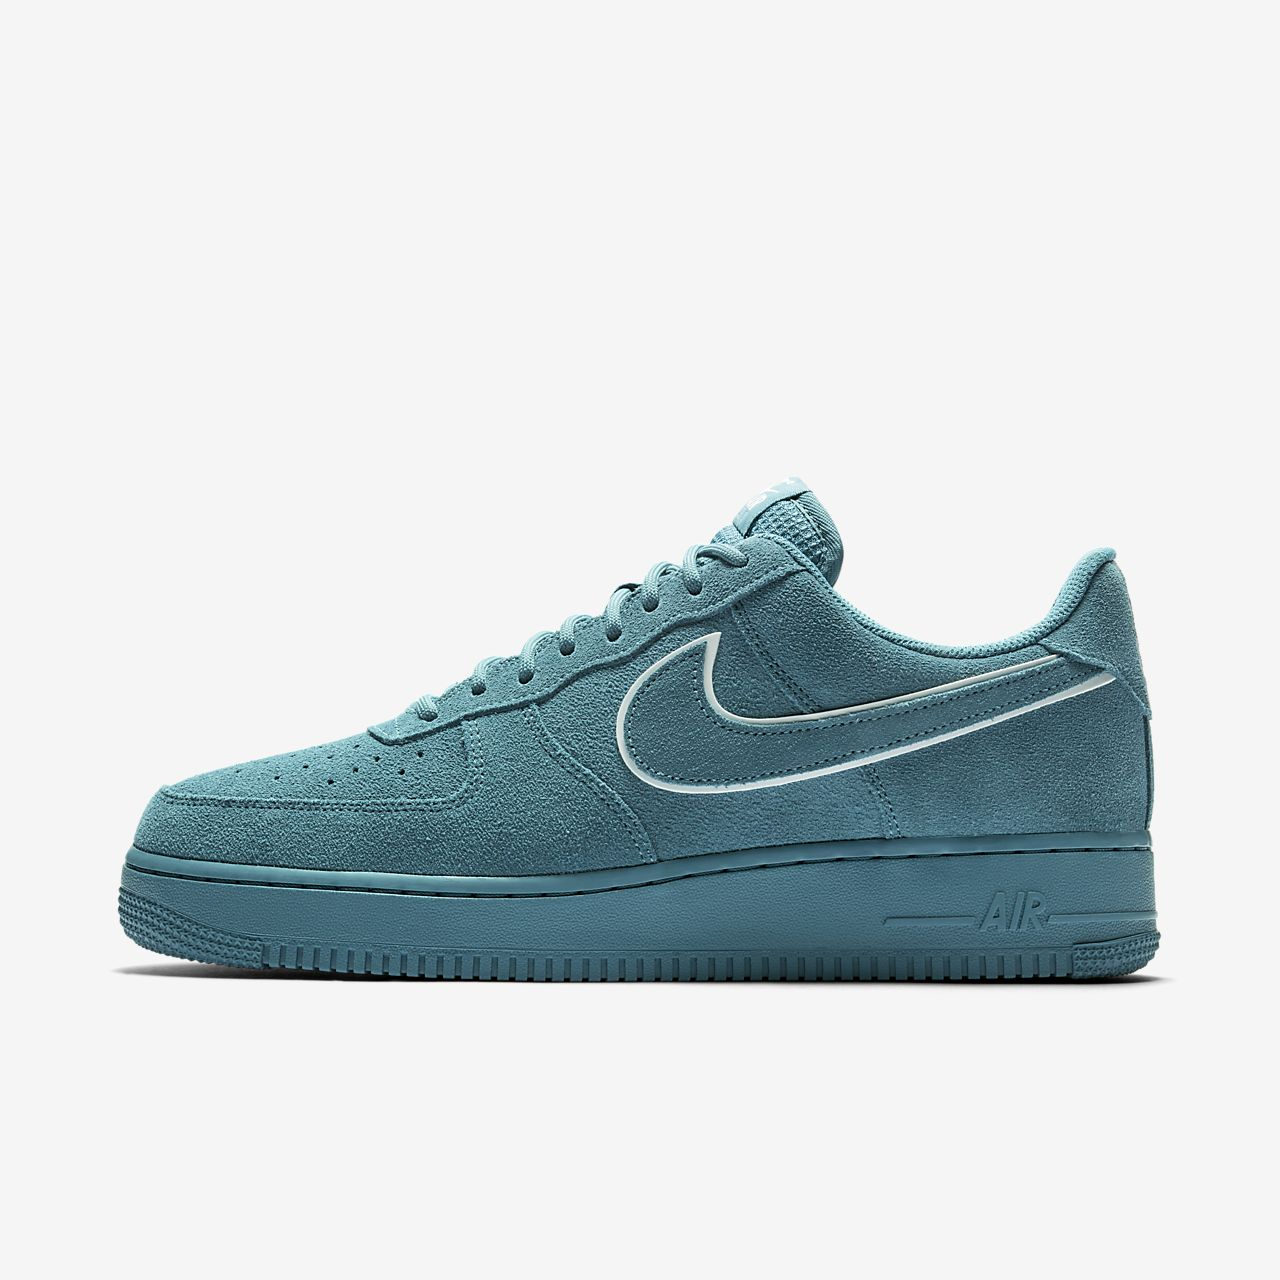 Nike Air Force 1 '07 LV8 Suede Mens AA1117-400 Noise Aqua Blue Shoes Size 10